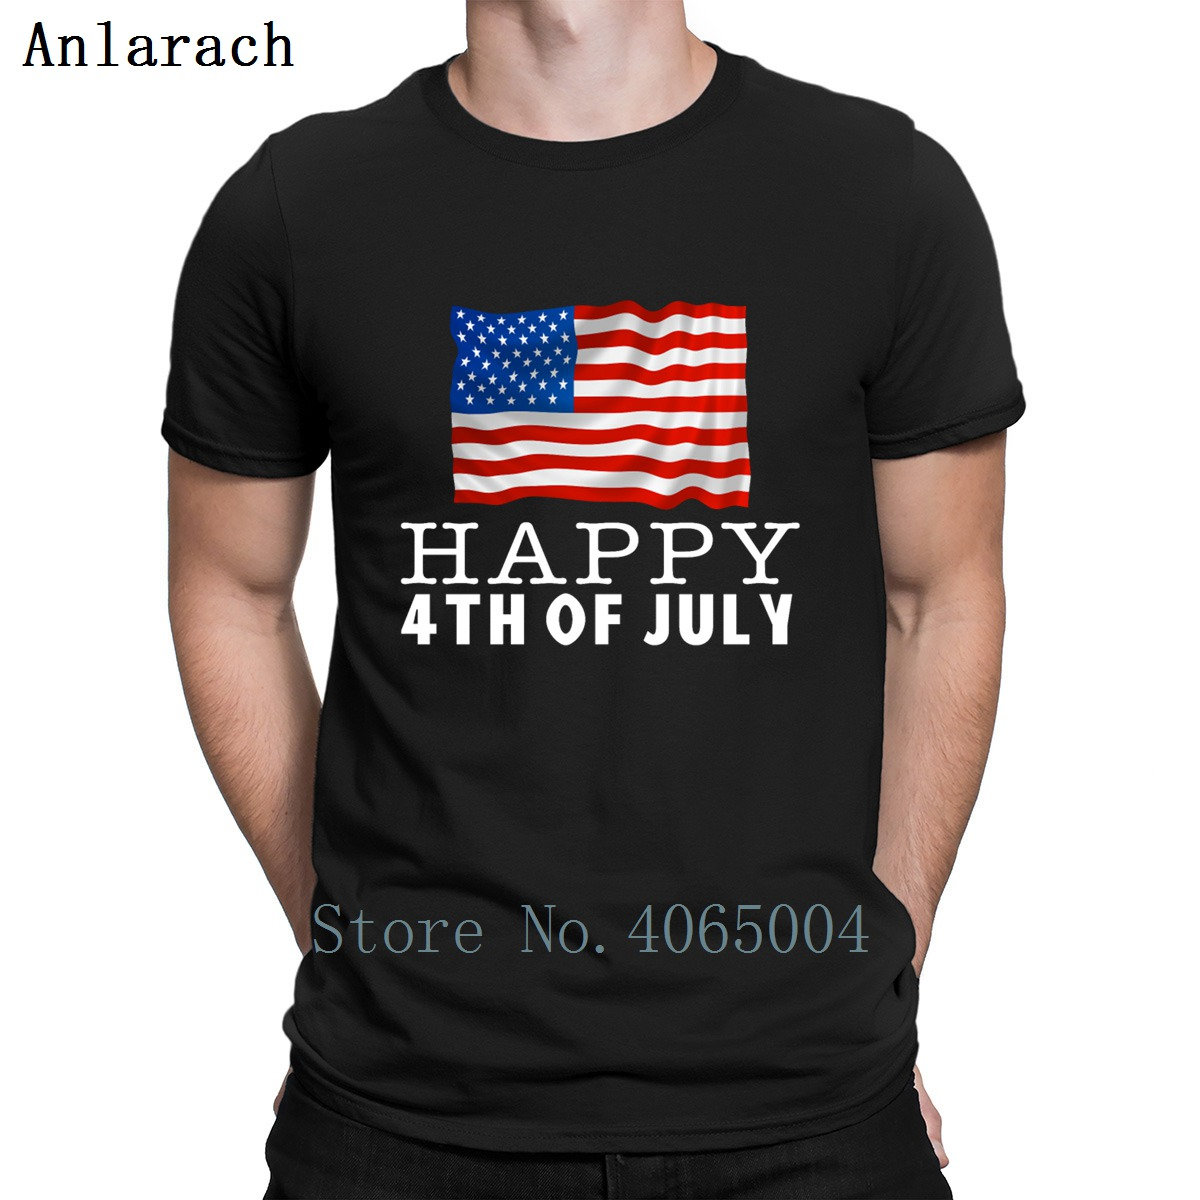 Happy Fourth Of 4 July T Shirt Letter O Neck Loose Personalized Spring Short Sleeve Humor Cool Shirt